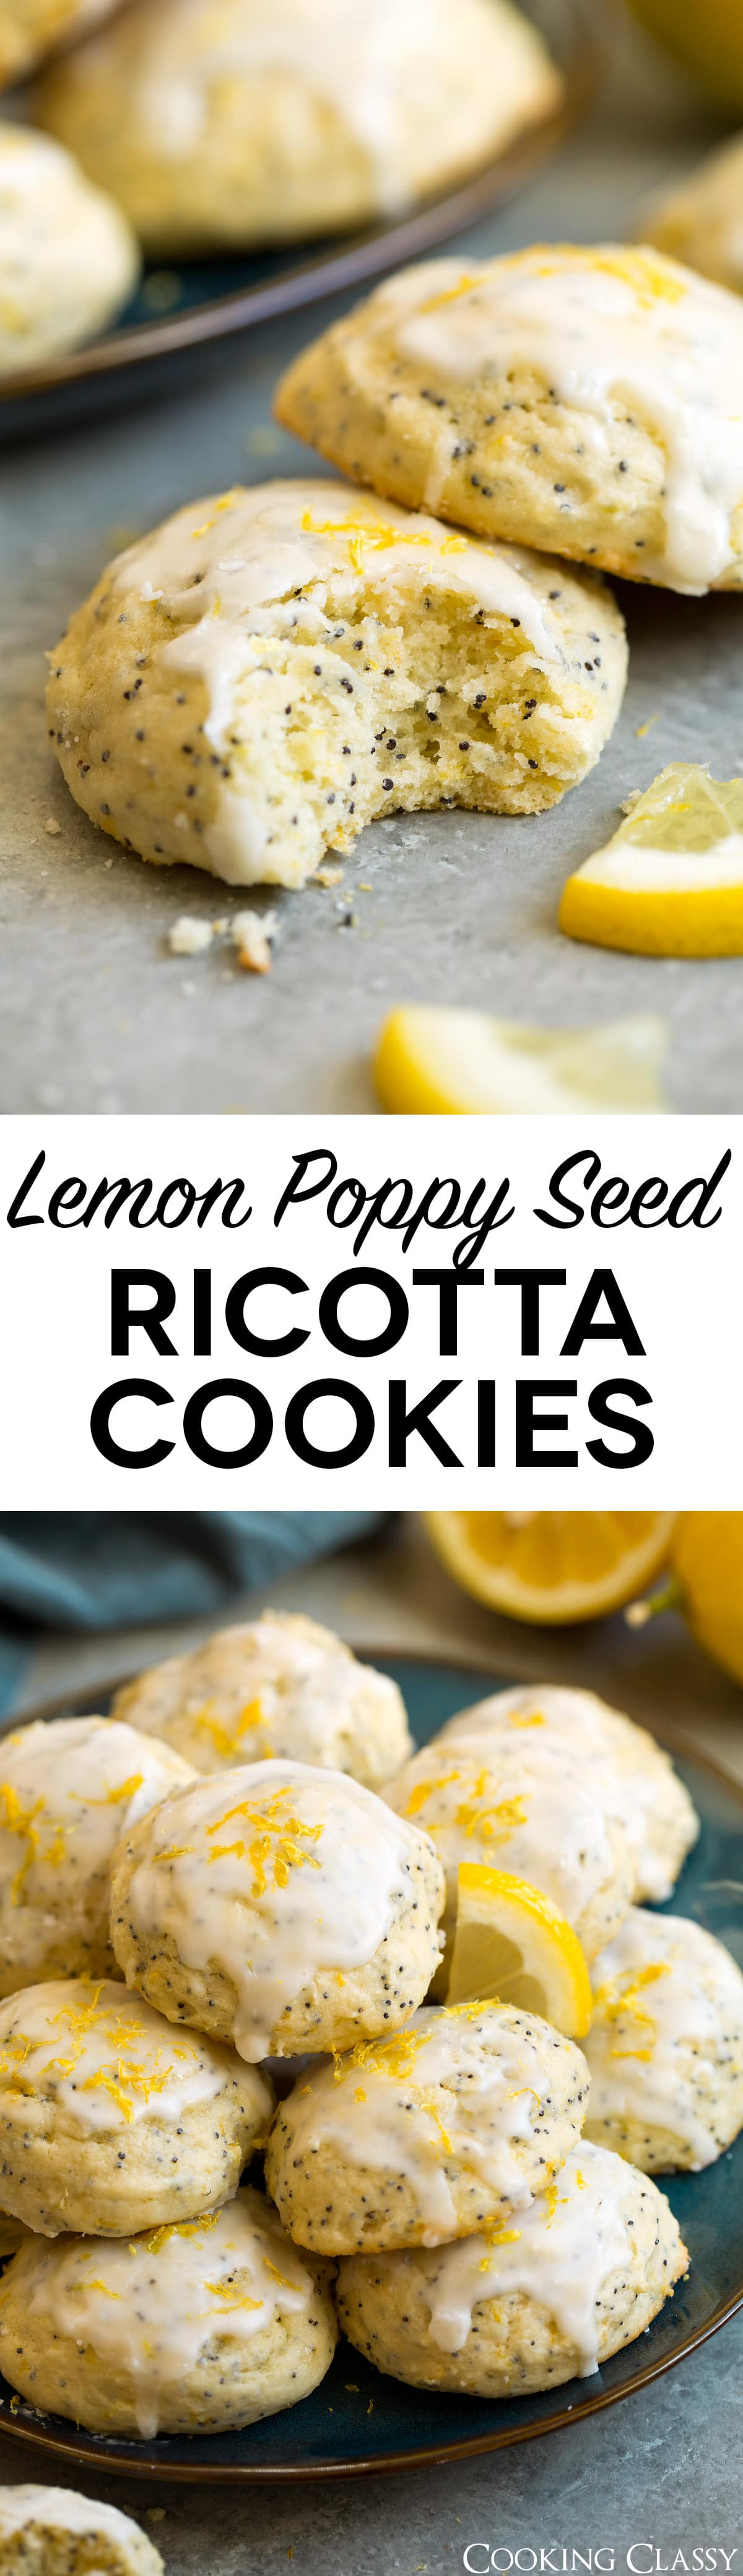 Lemon Poppy Seed Ricotta Cookies - a must try cookie! Perfectly tender, brightly lemony and the glaze is the perfect finish! #cookies #ricottacookies #lemoncookies #recipe